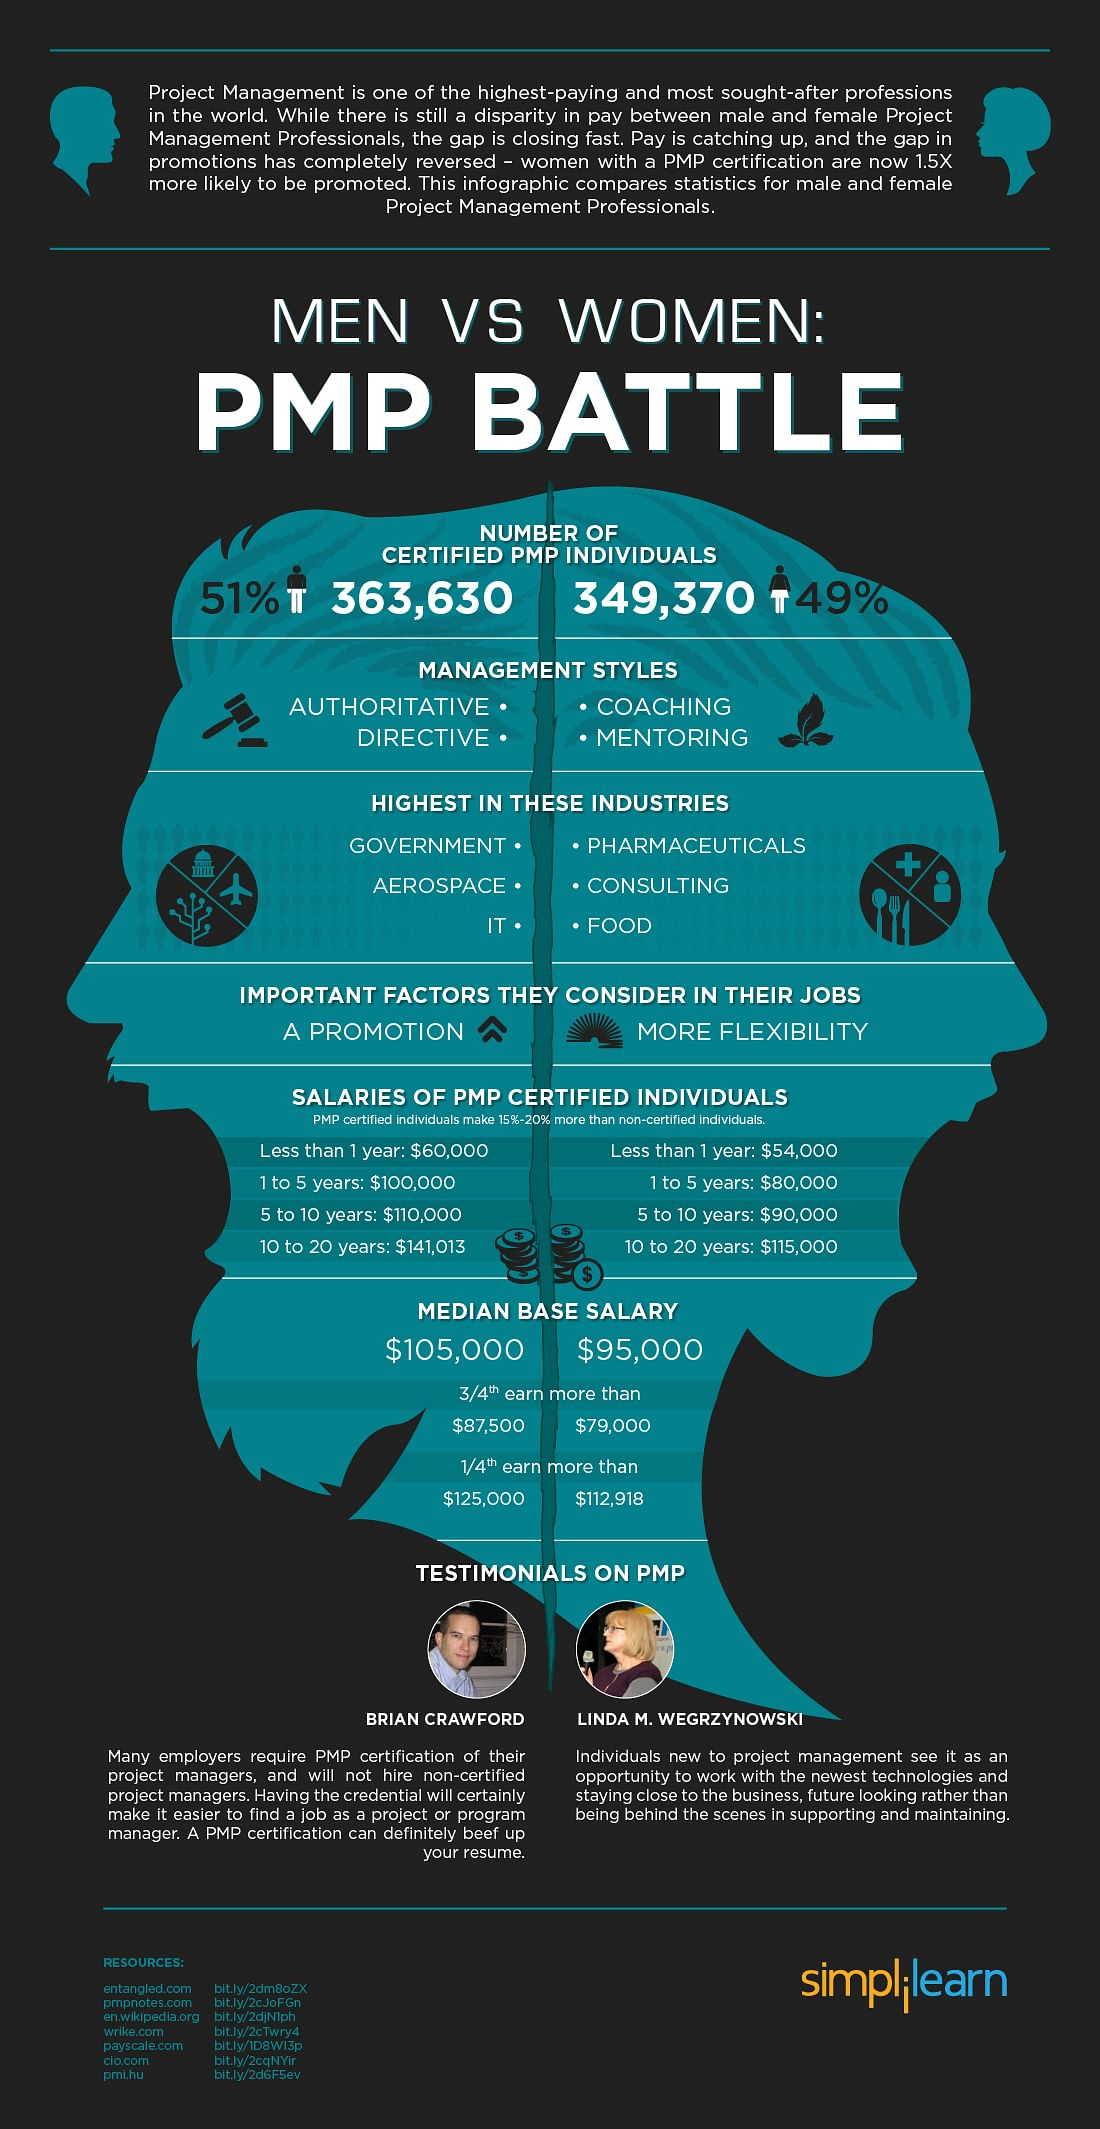 Pmp certification salaries men vs women entangled pmp salaries men vs women 1betcityfo Gallery